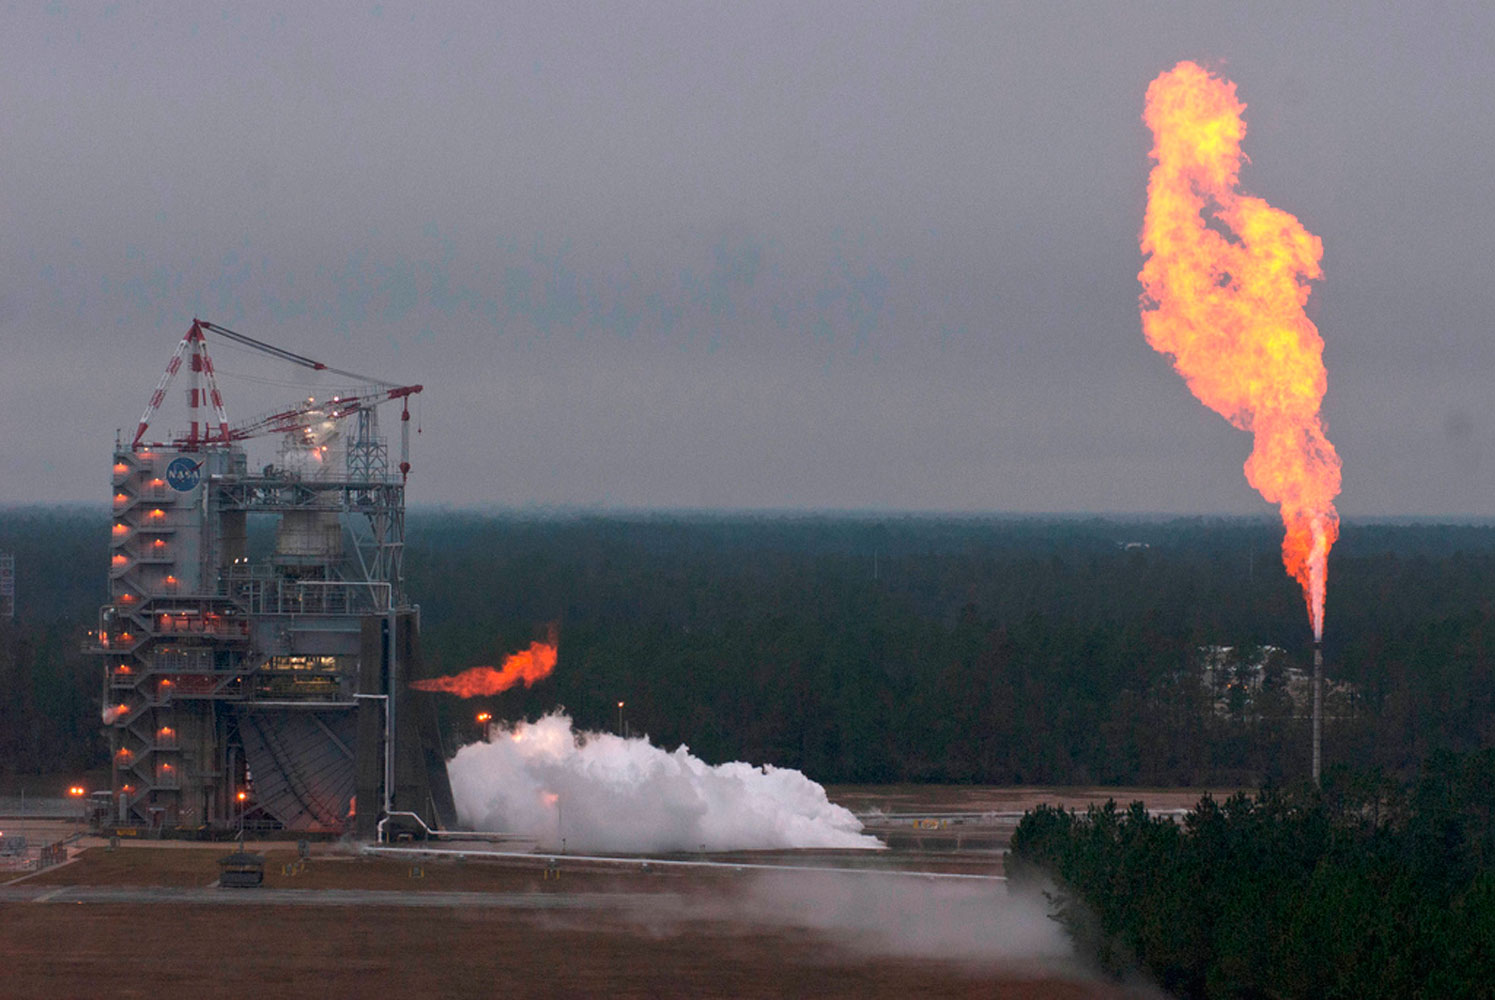 A version of the engine that will power Orion's launch system burns during a hot-fire test on Nov. 27, 2012 at NASA's Stennis Space Center in Mississippi.